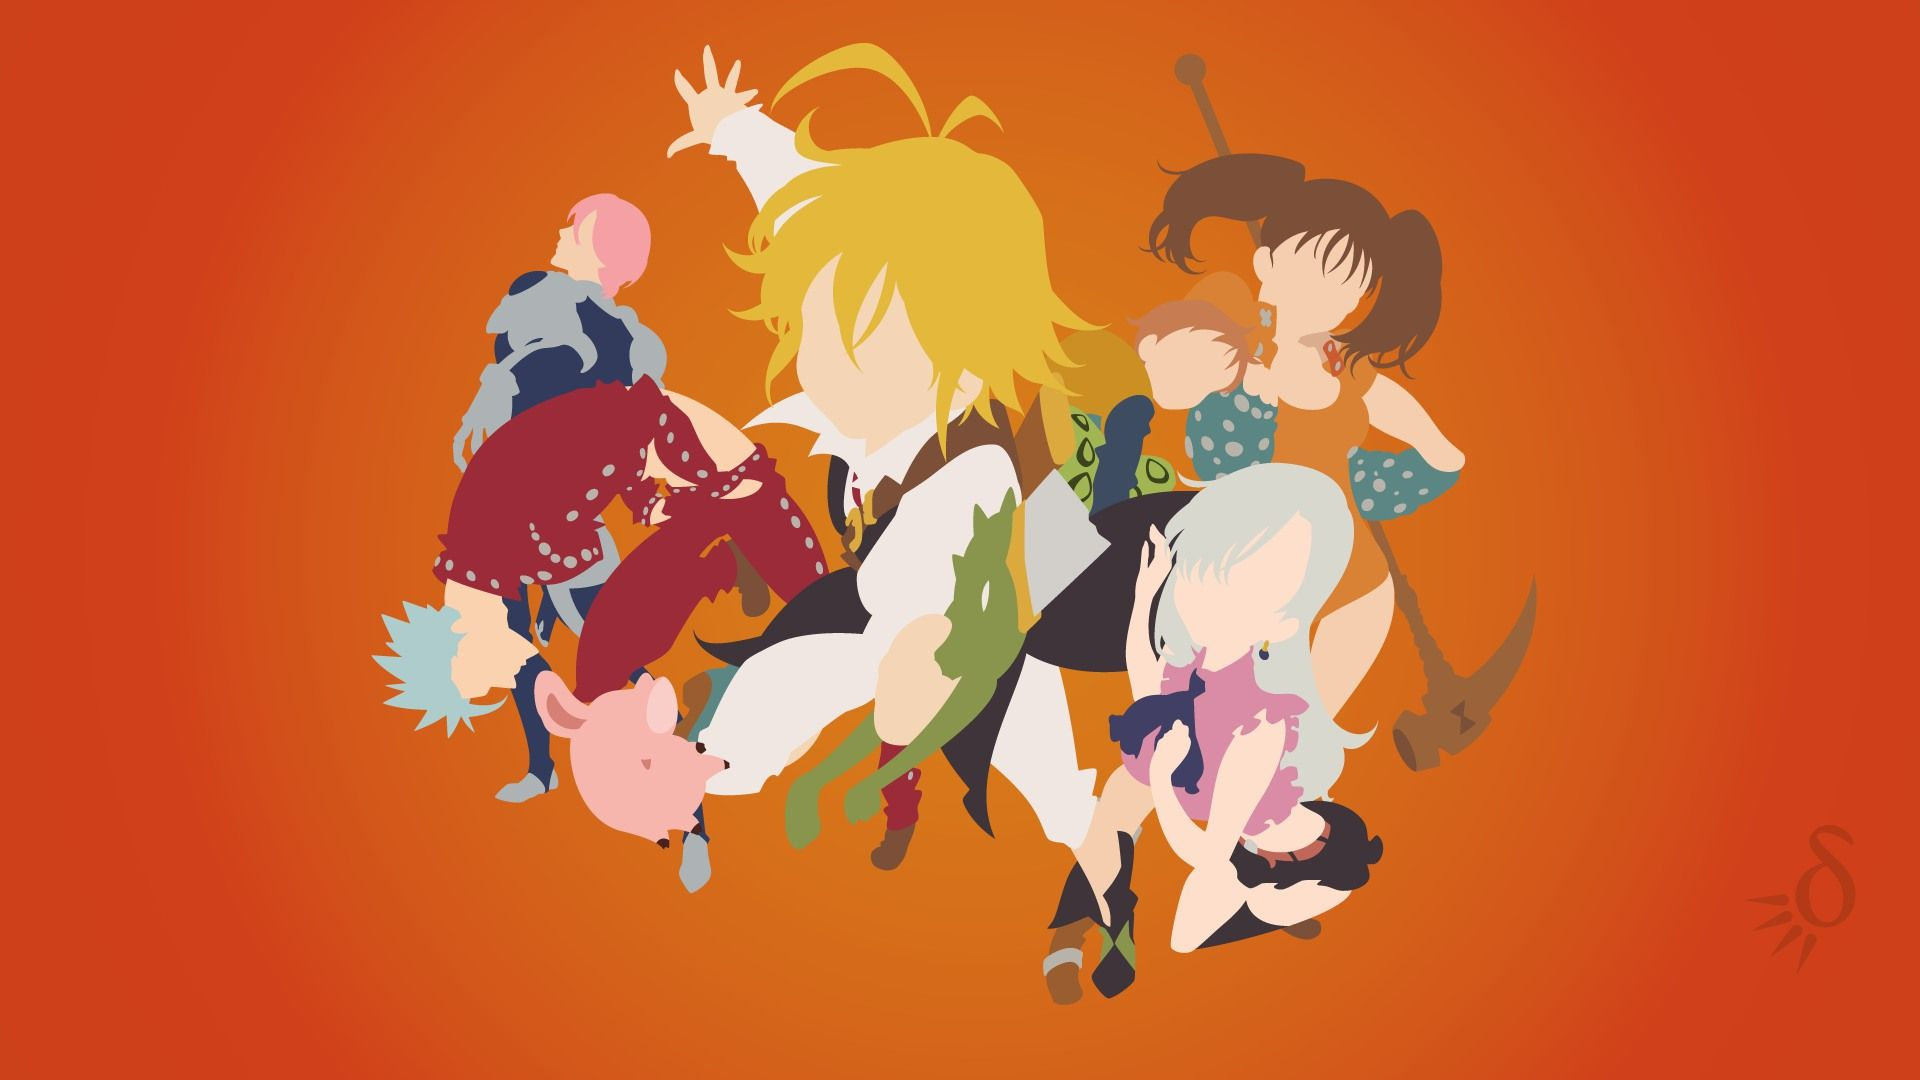 Resultado de imagen para the seven deadly sins wallpaper